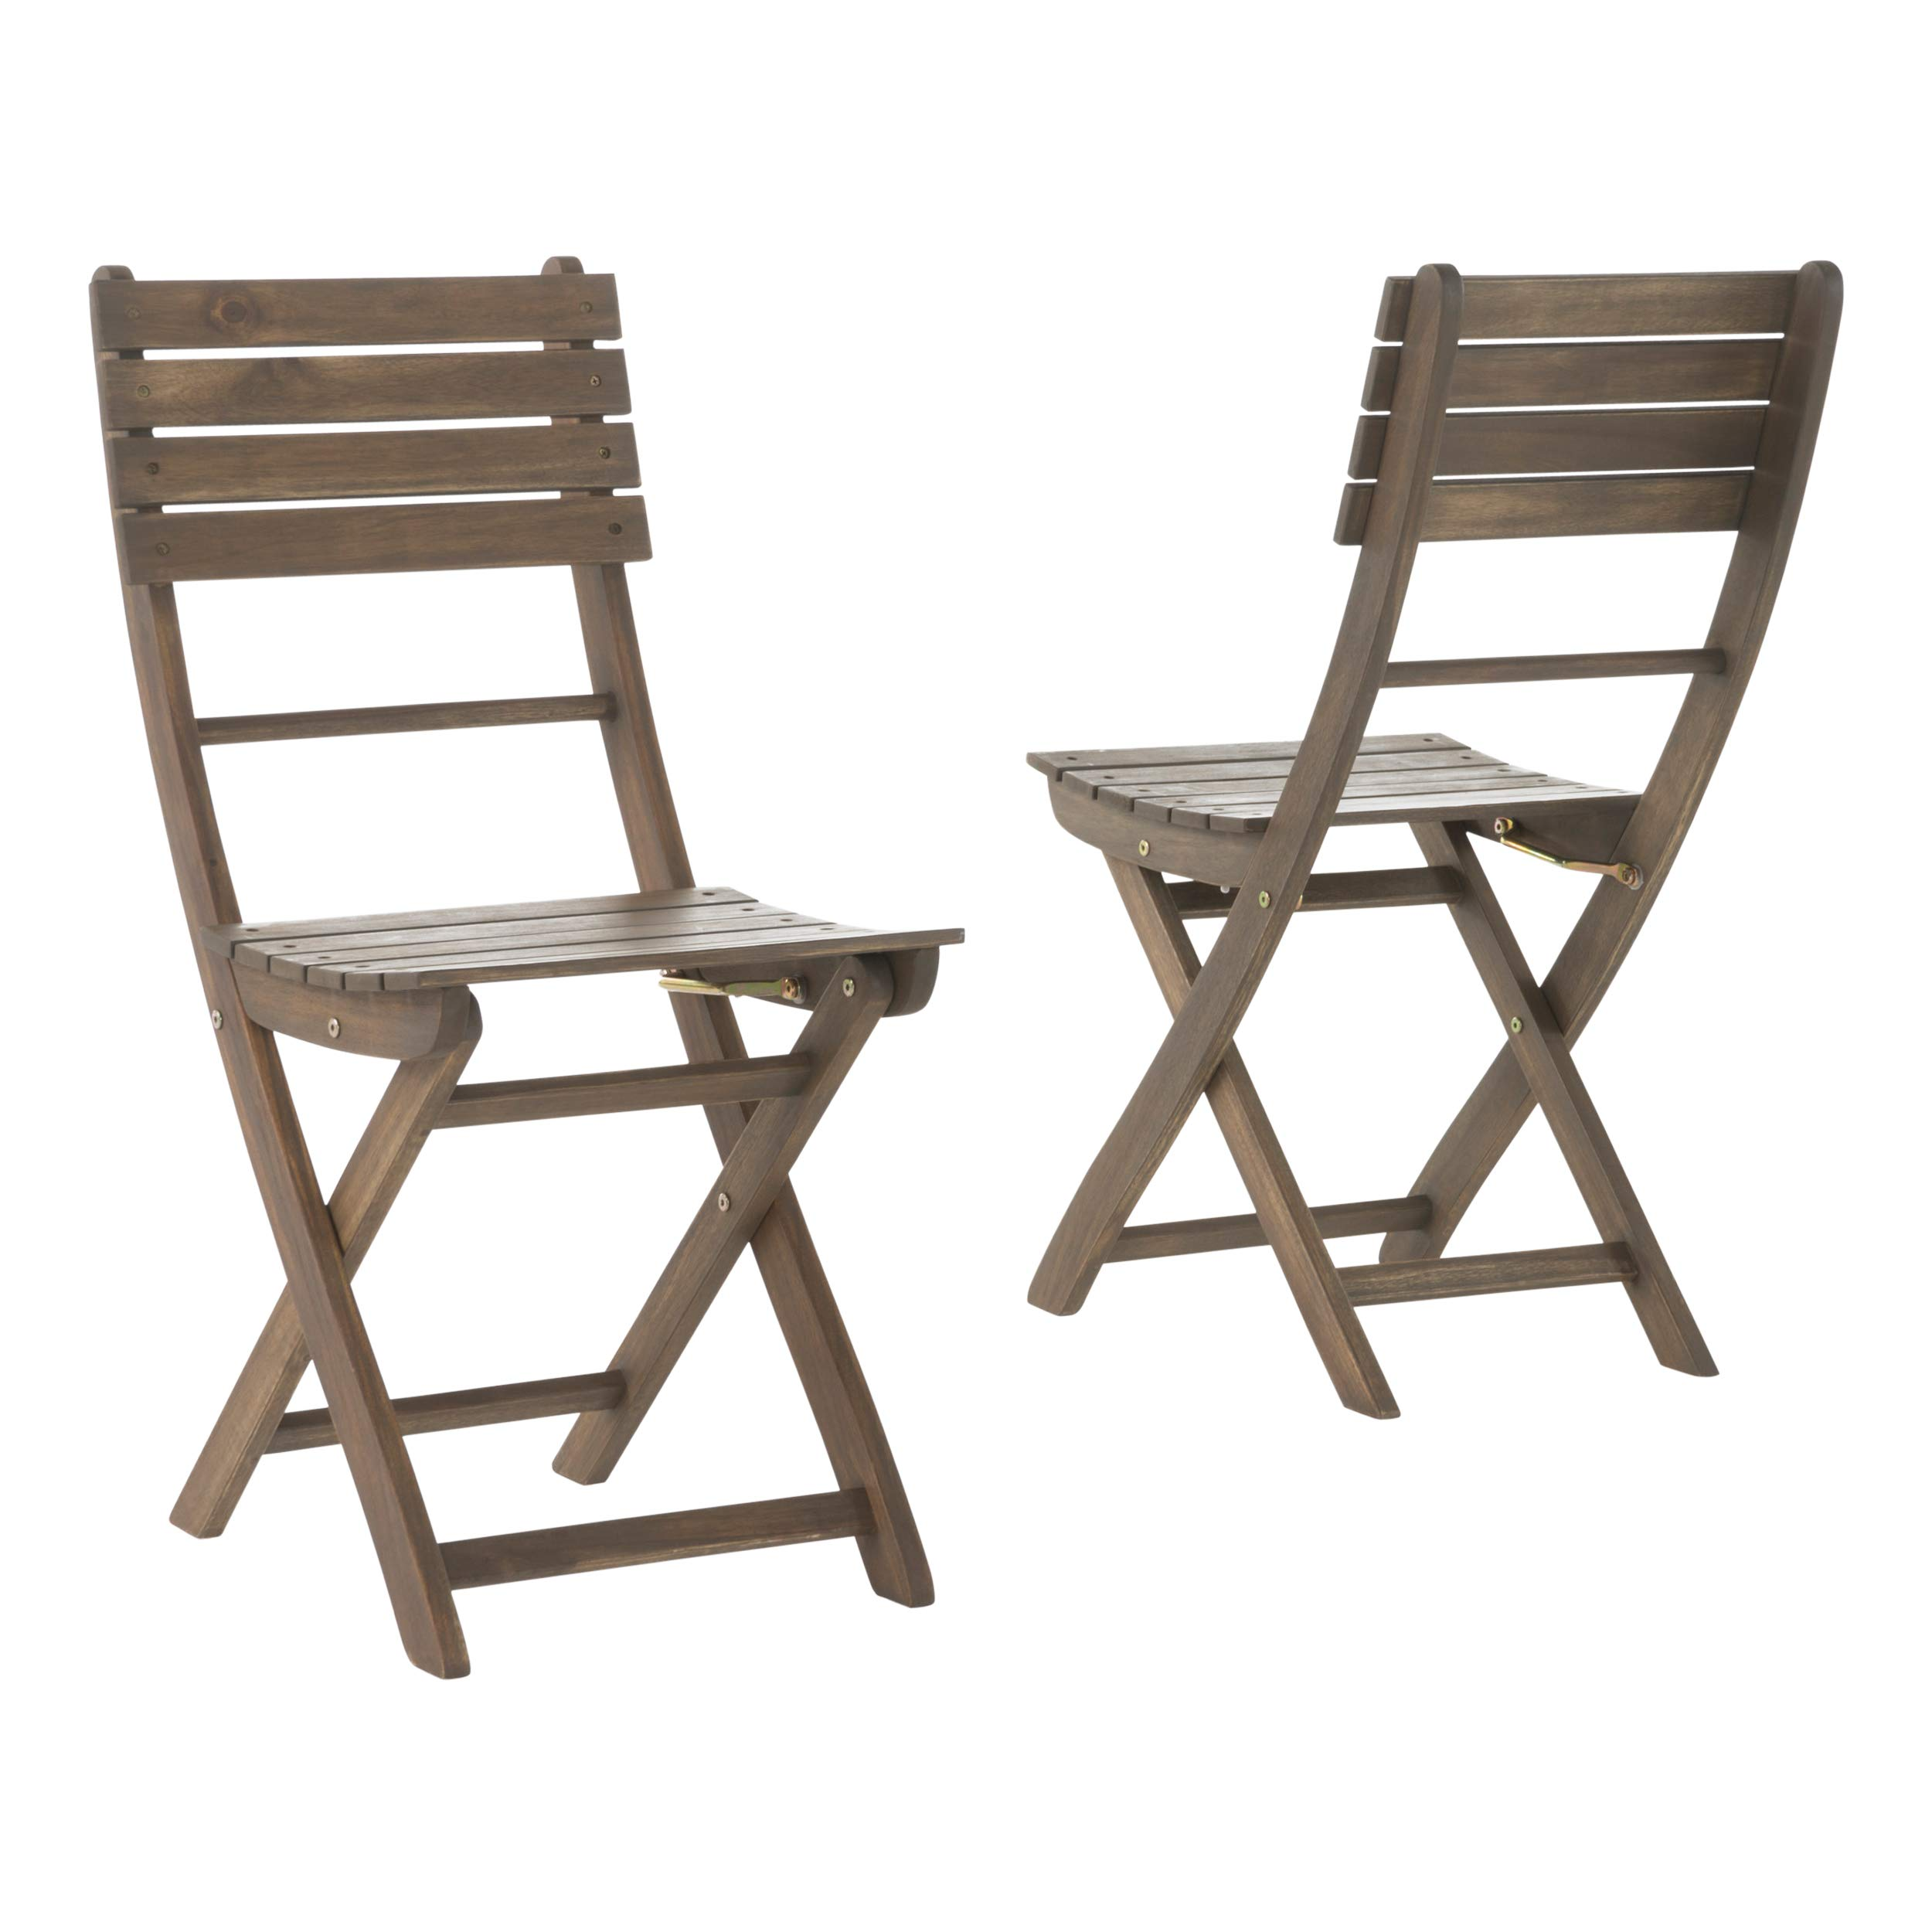 GDF Studio Vicaro | Acacia Wood Foldable Outdoor Dining Chairs | Set of 2 | Perfect for Patio | with Grey Finish